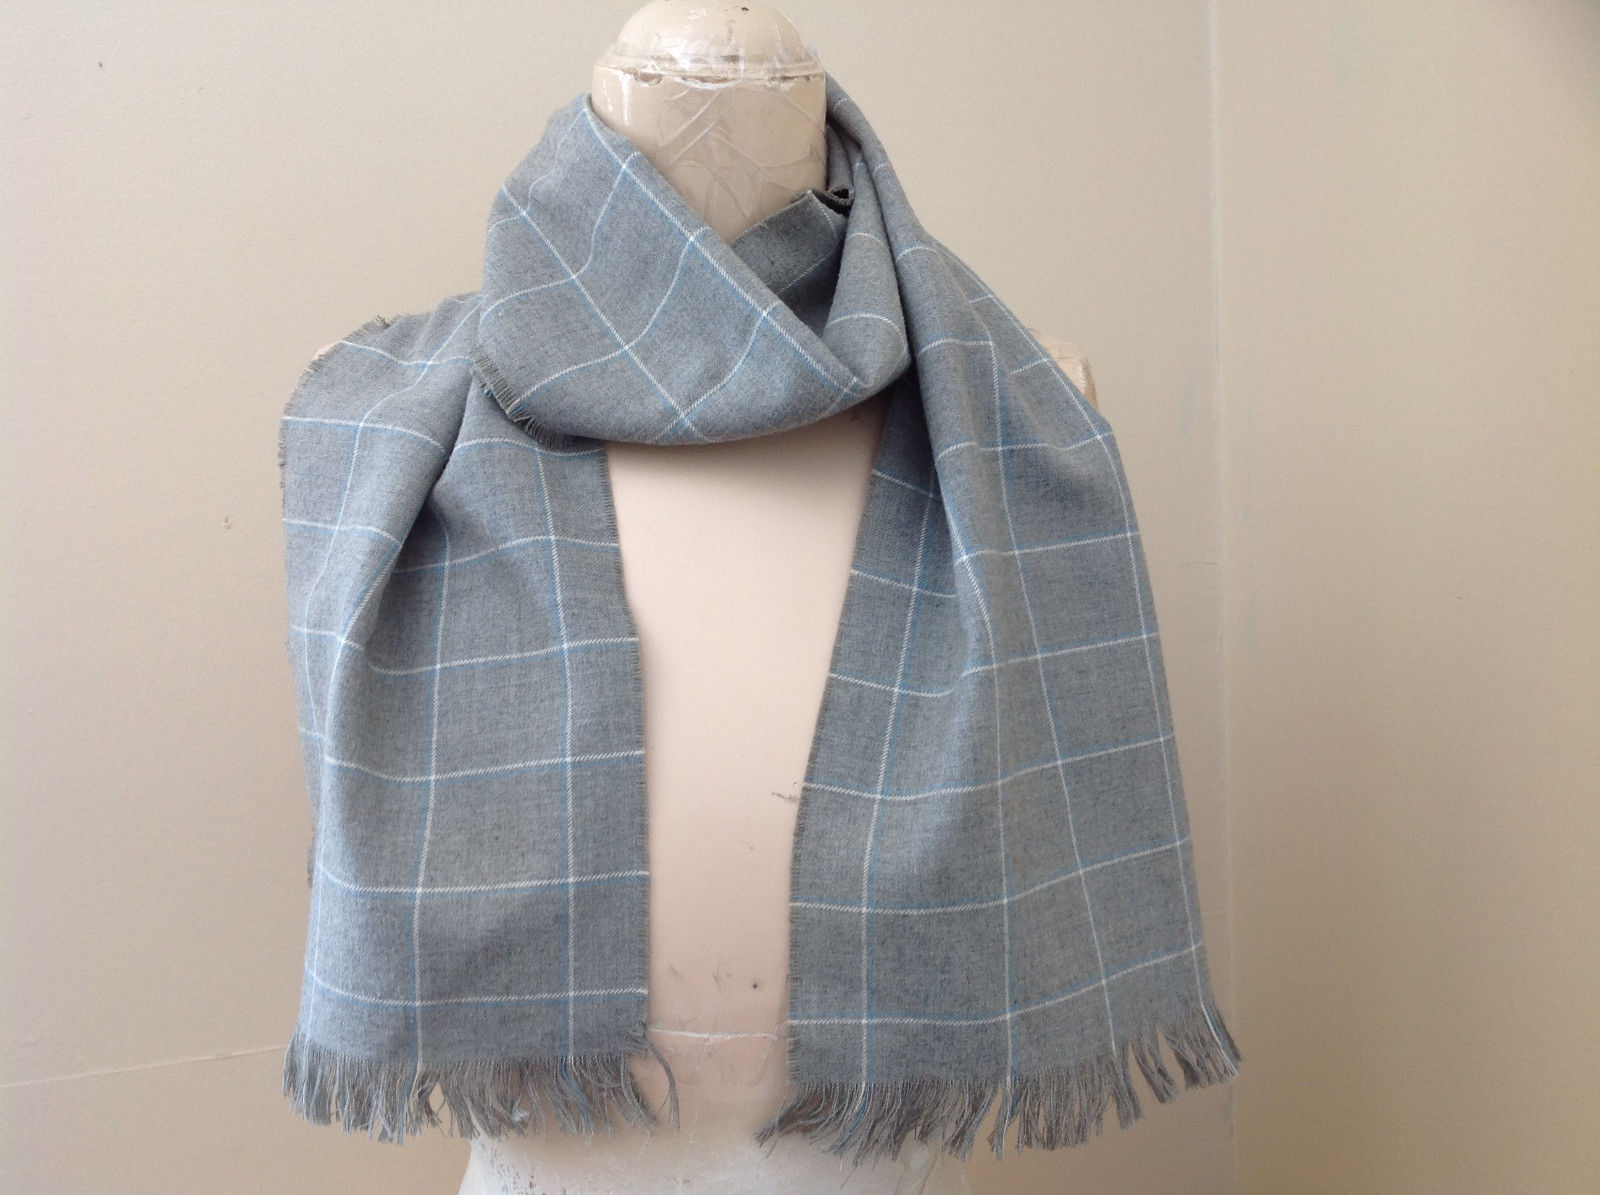 Lovely Heather Gray Plaid Fringe Scarf 58 Inches Long